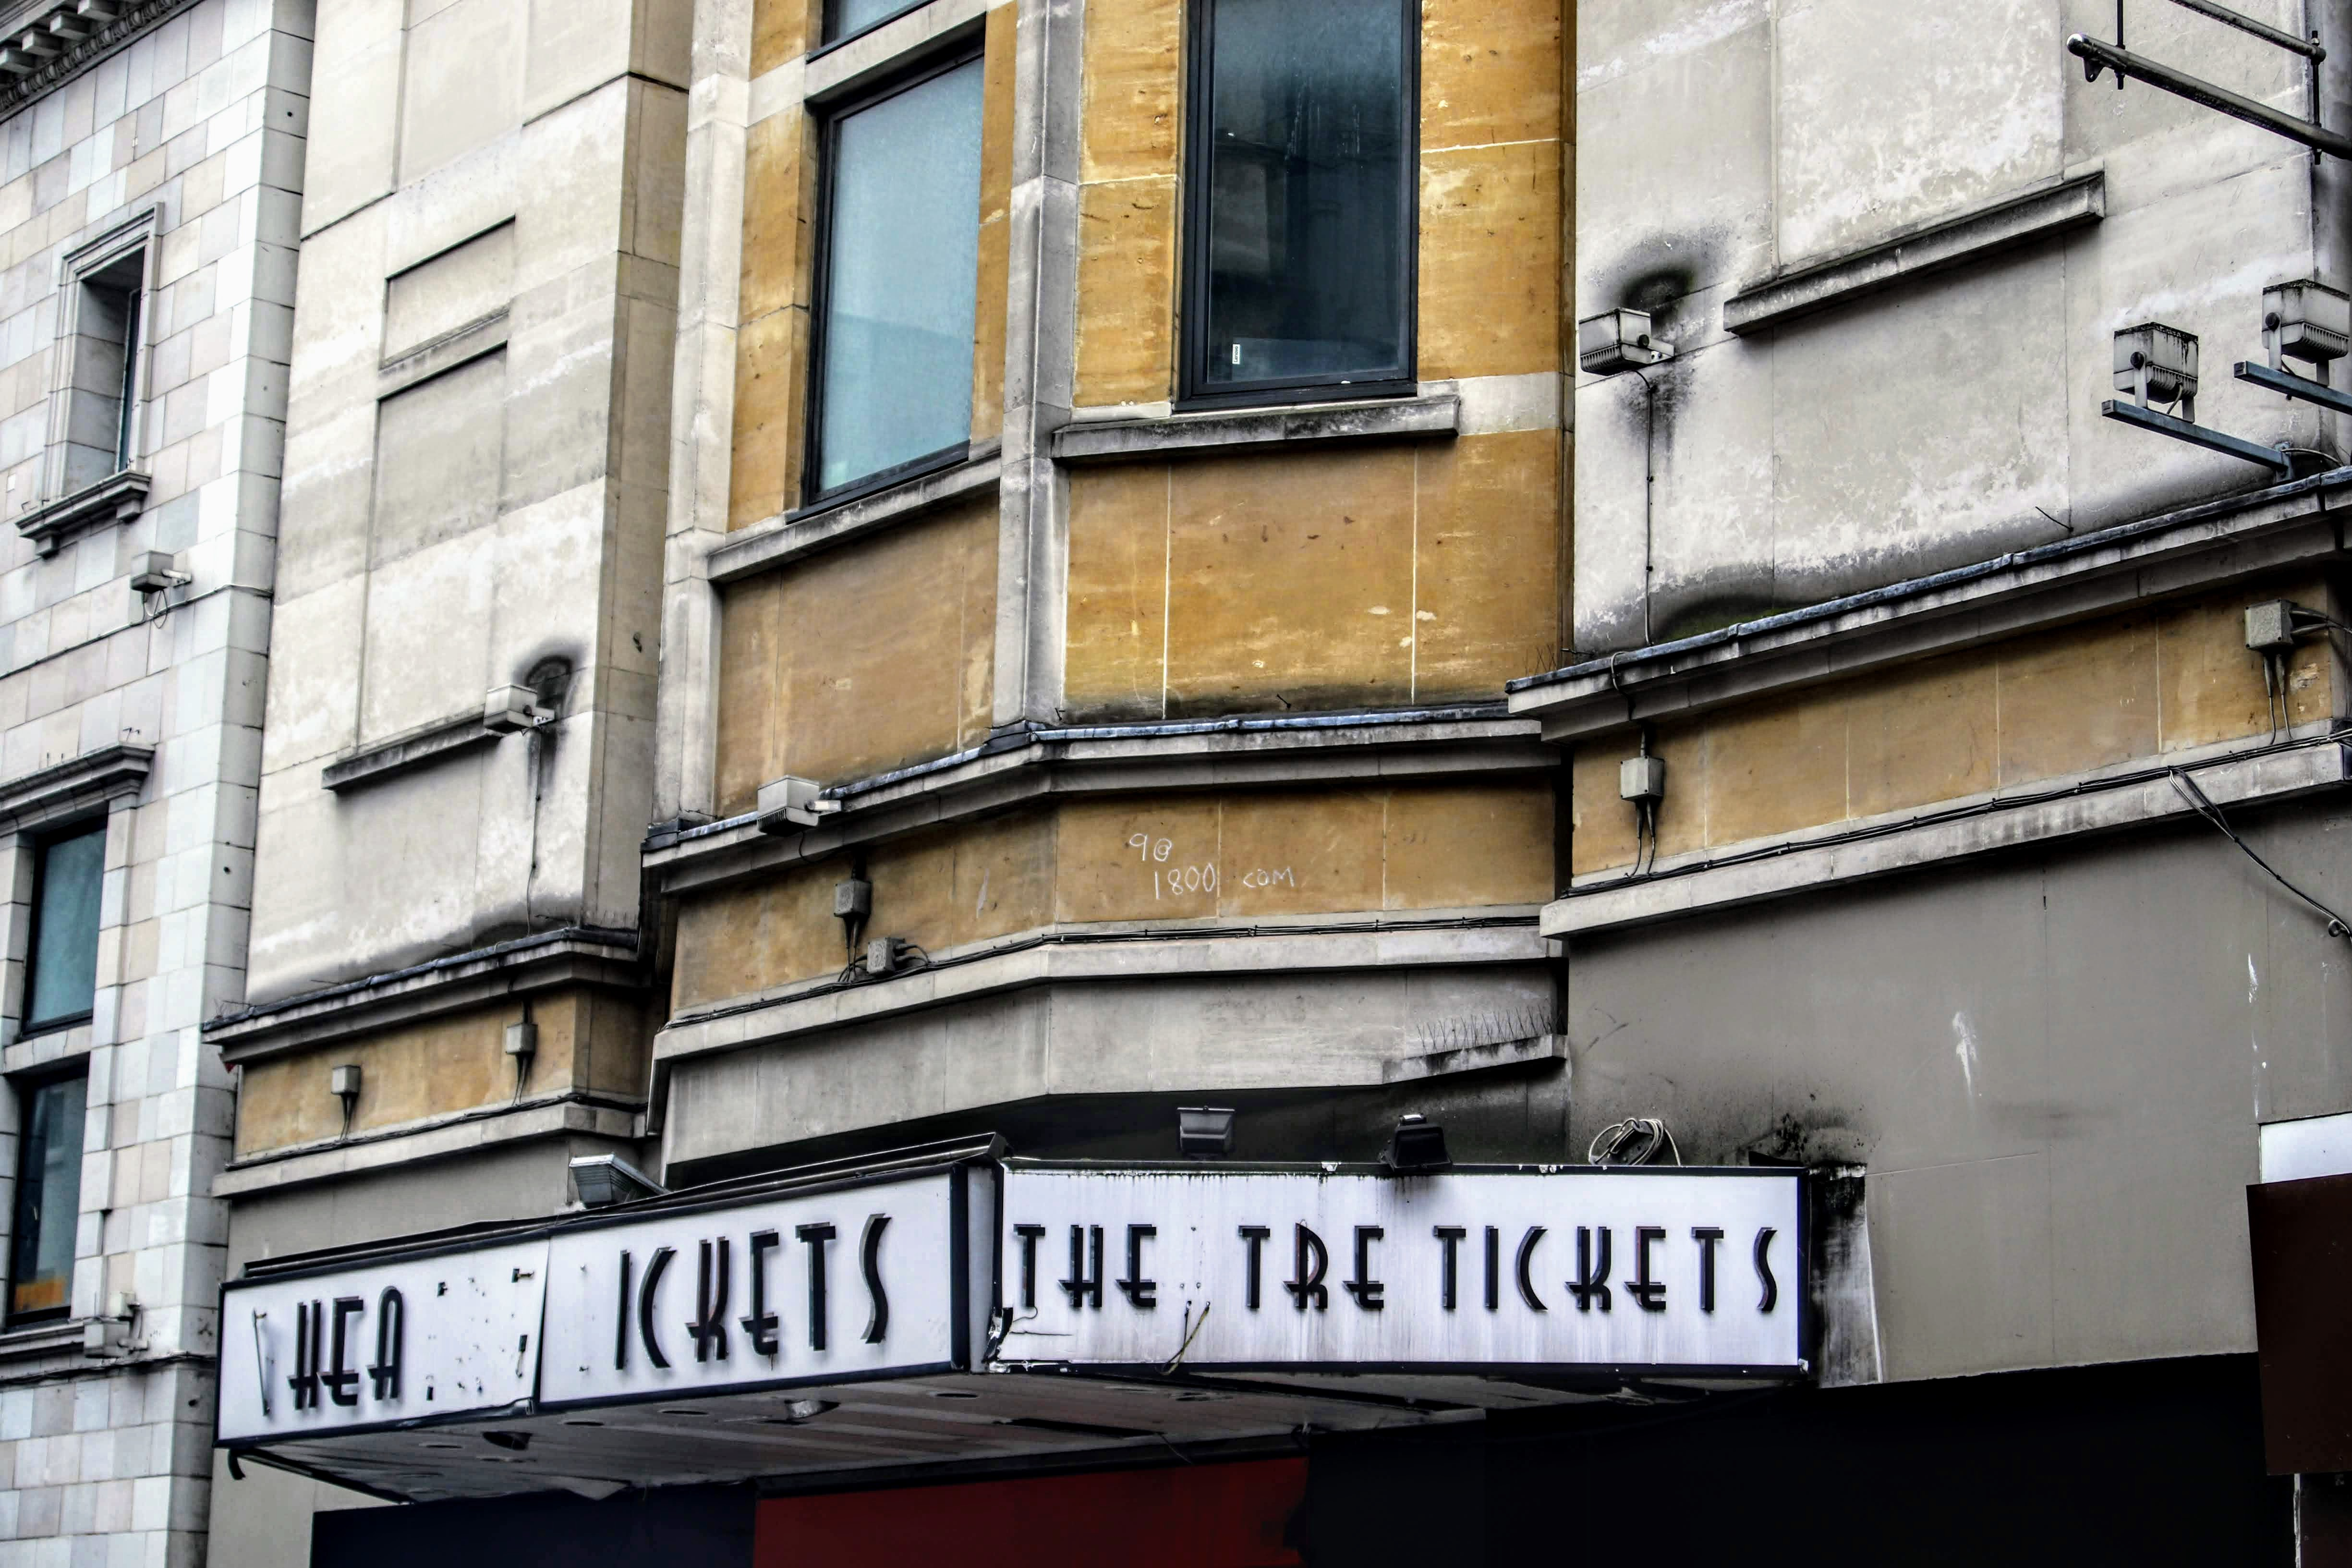 Old London Theatre